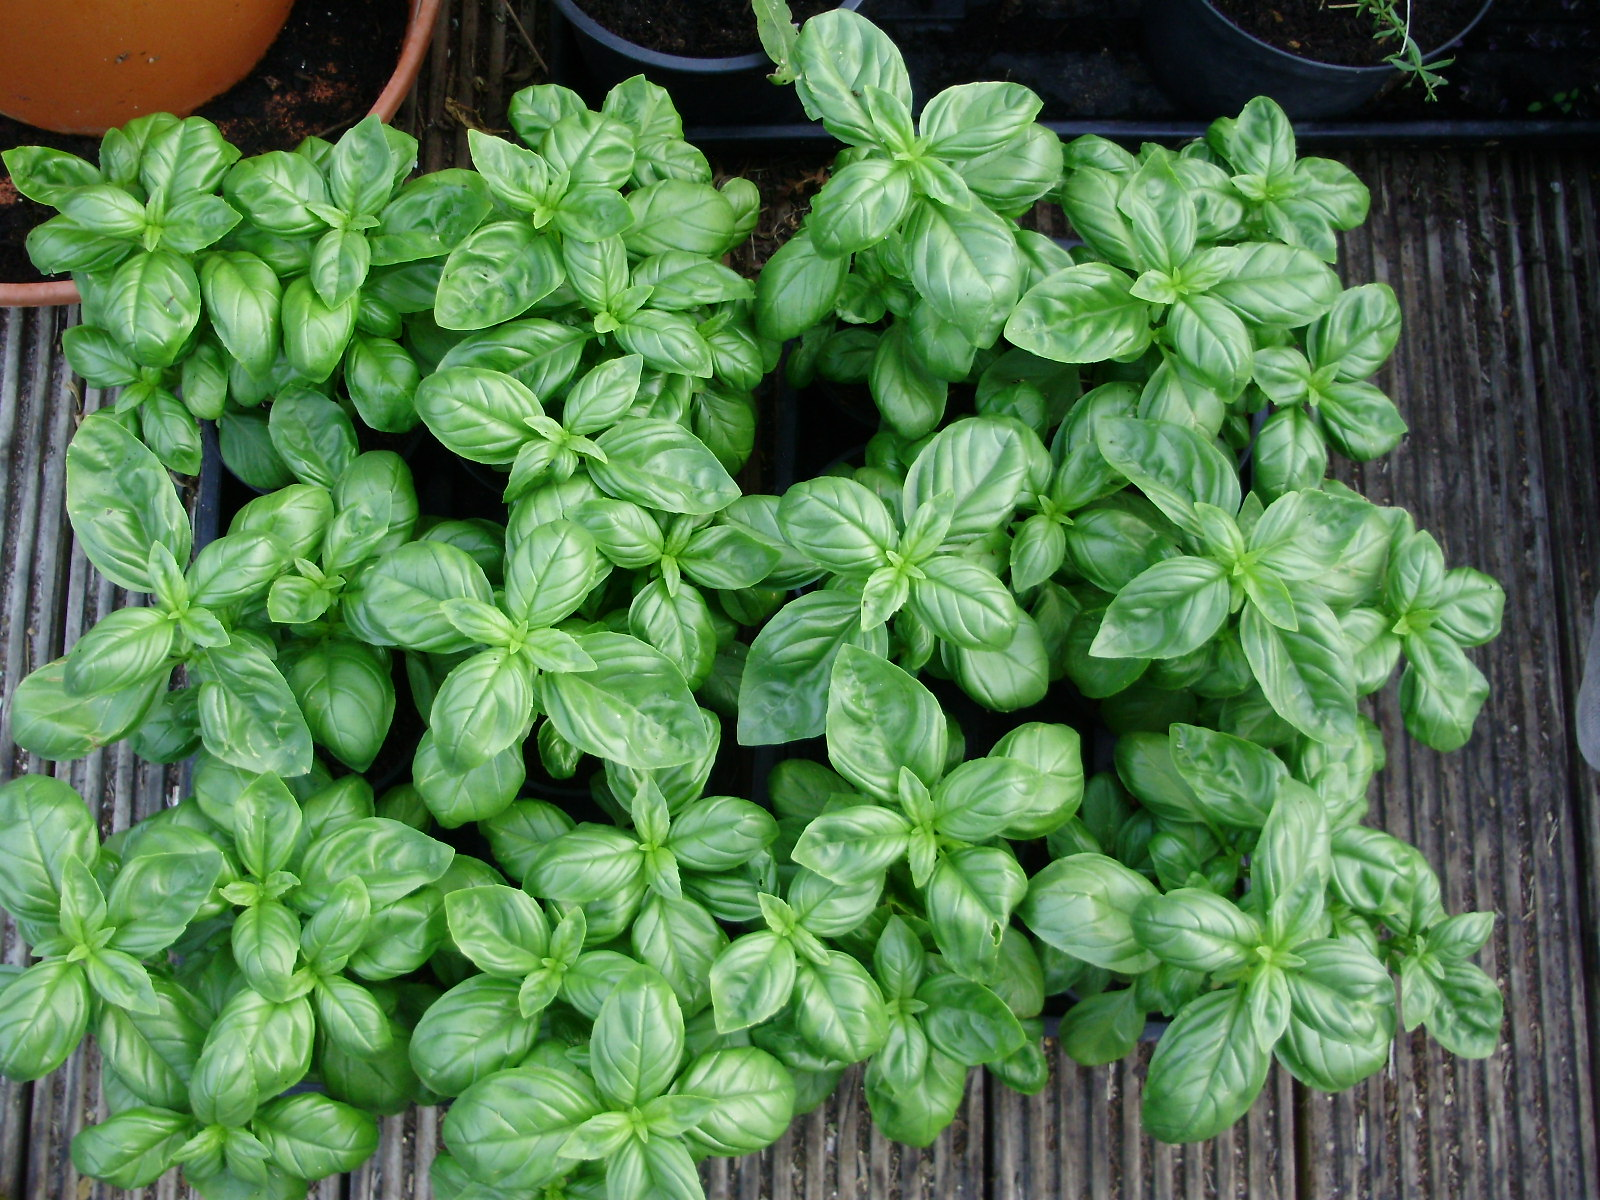 10. You now have 12 new full pots of basil from 3 originally - ready to plant out